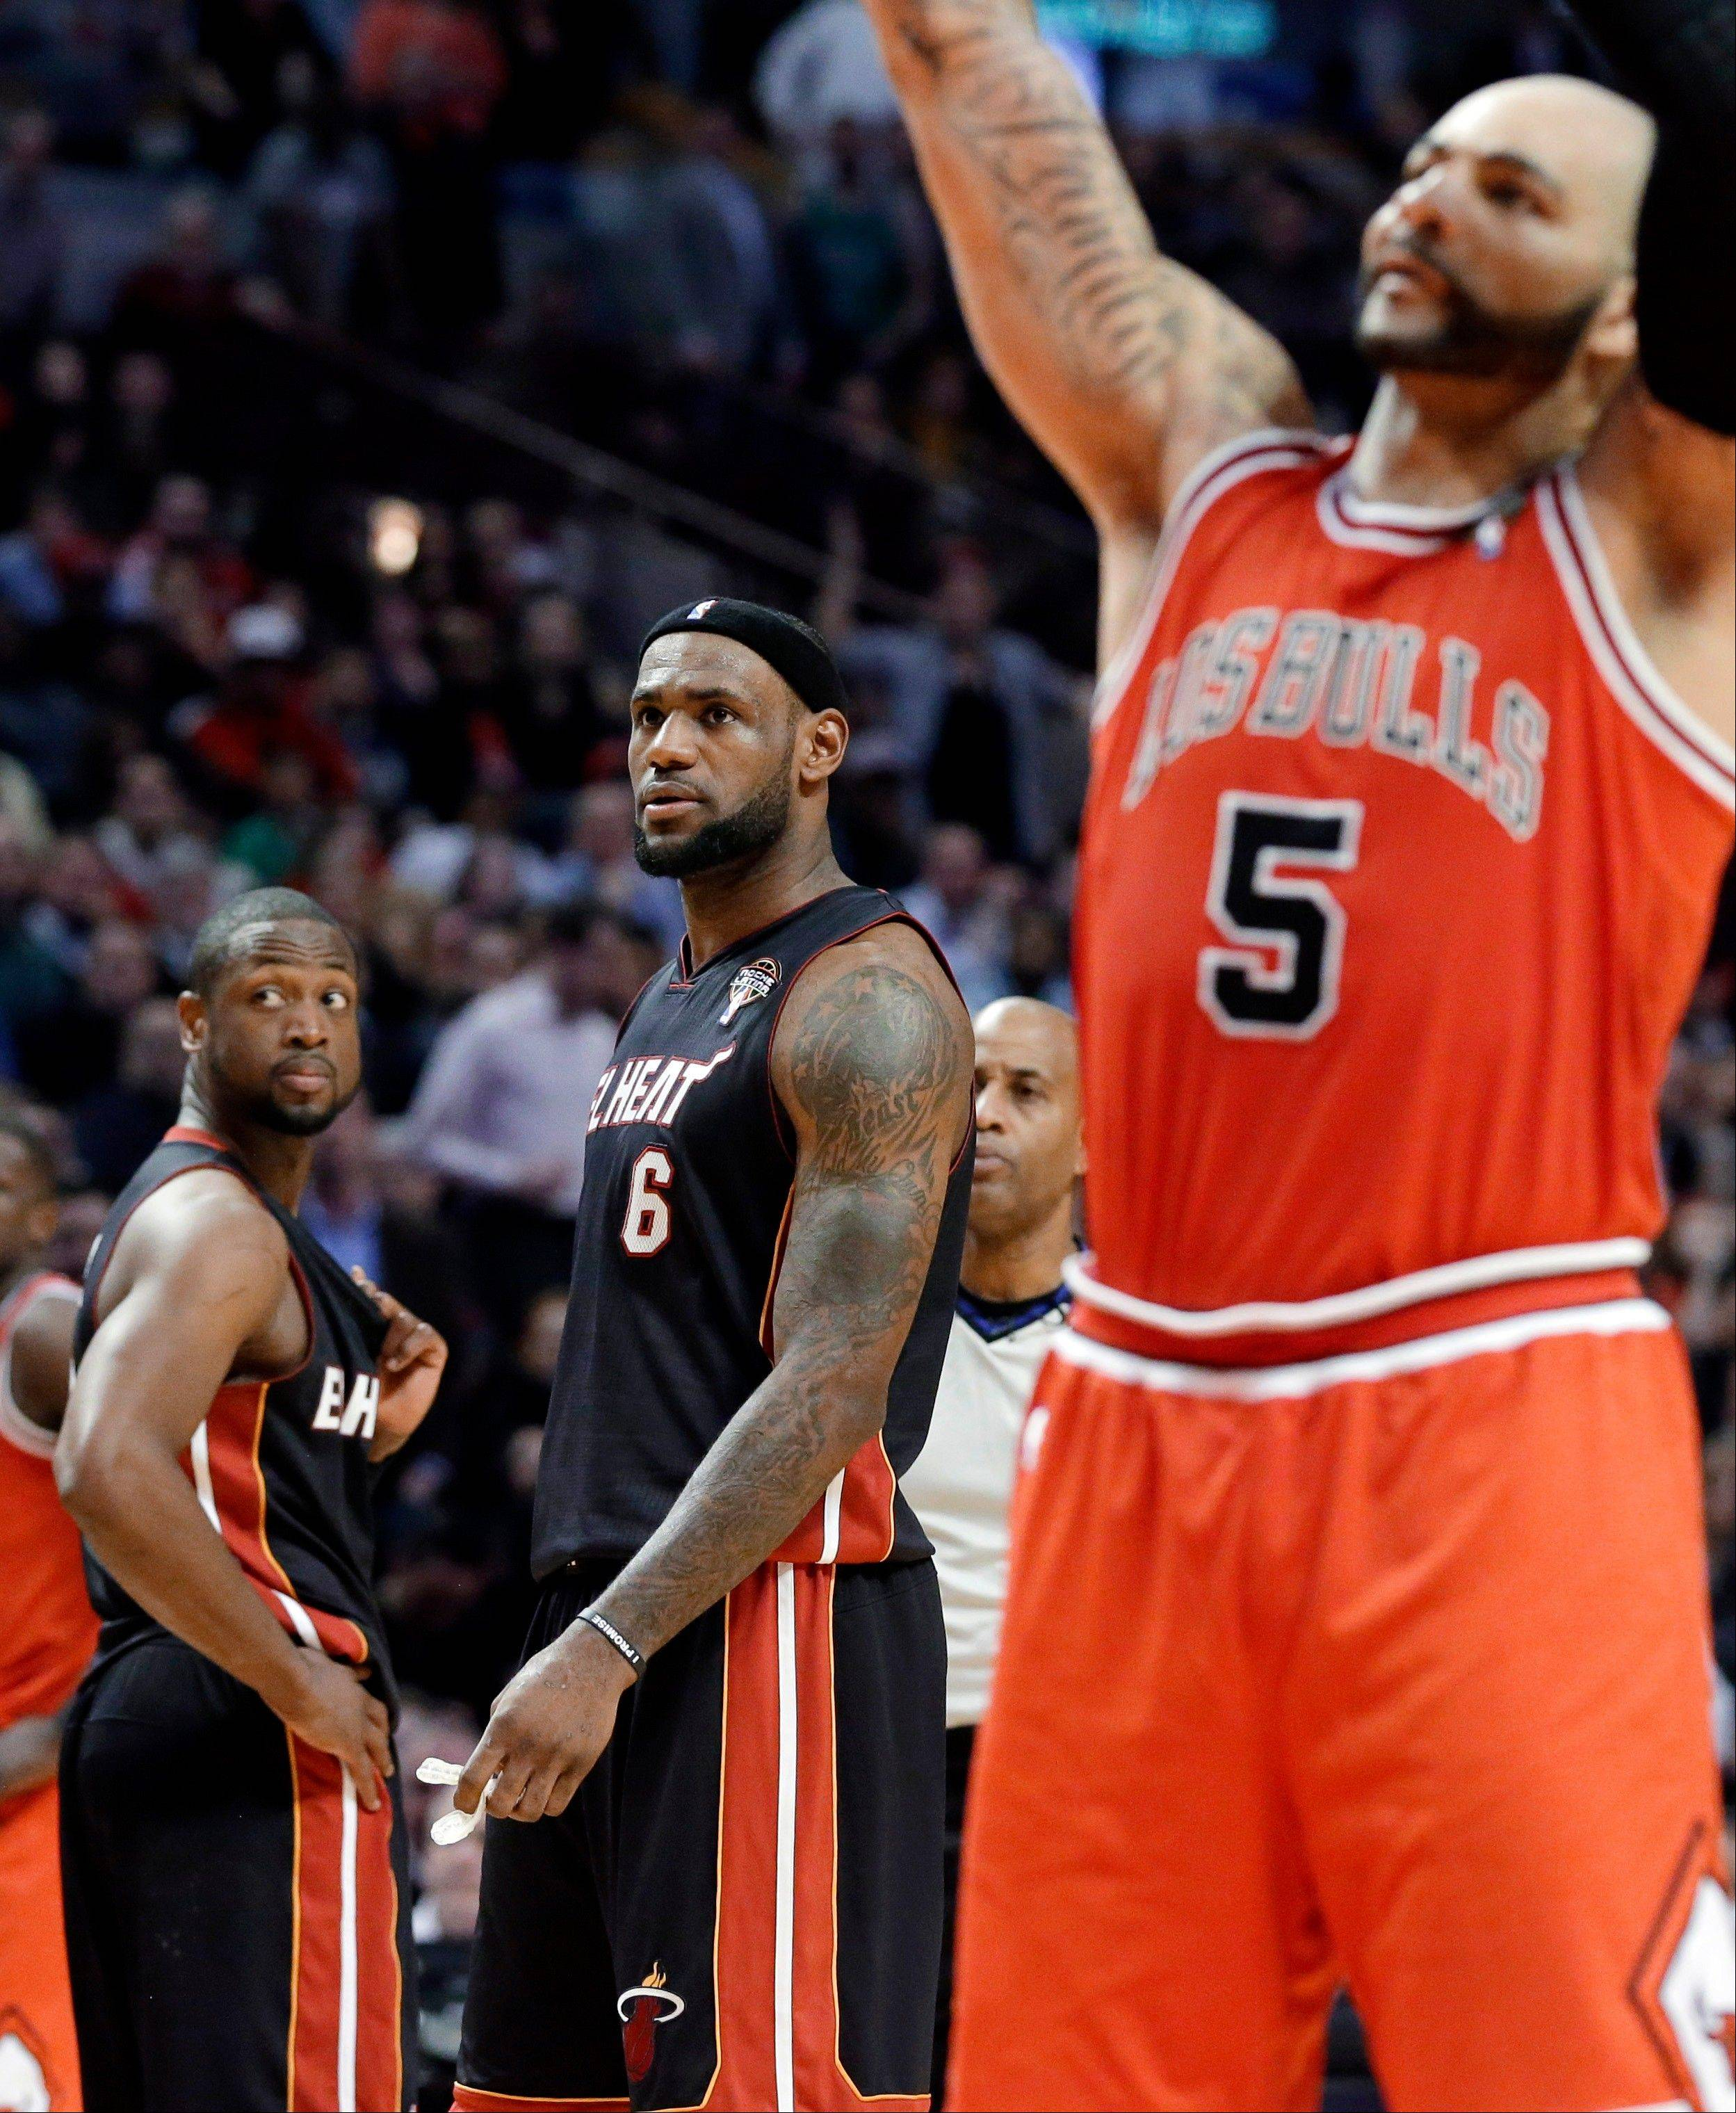 Miami Heat guard Dwyane Wade, left, and forward LeBron James, watch Chicago Bulls forward Carlos Boozer shoot a free throw after James fouled him during the fourth quarter of an NBA basketball game in Chicago on Wednesday, March 27, 2013. The Bulls won 101-97, ending the Heat's 27-game winning streak.